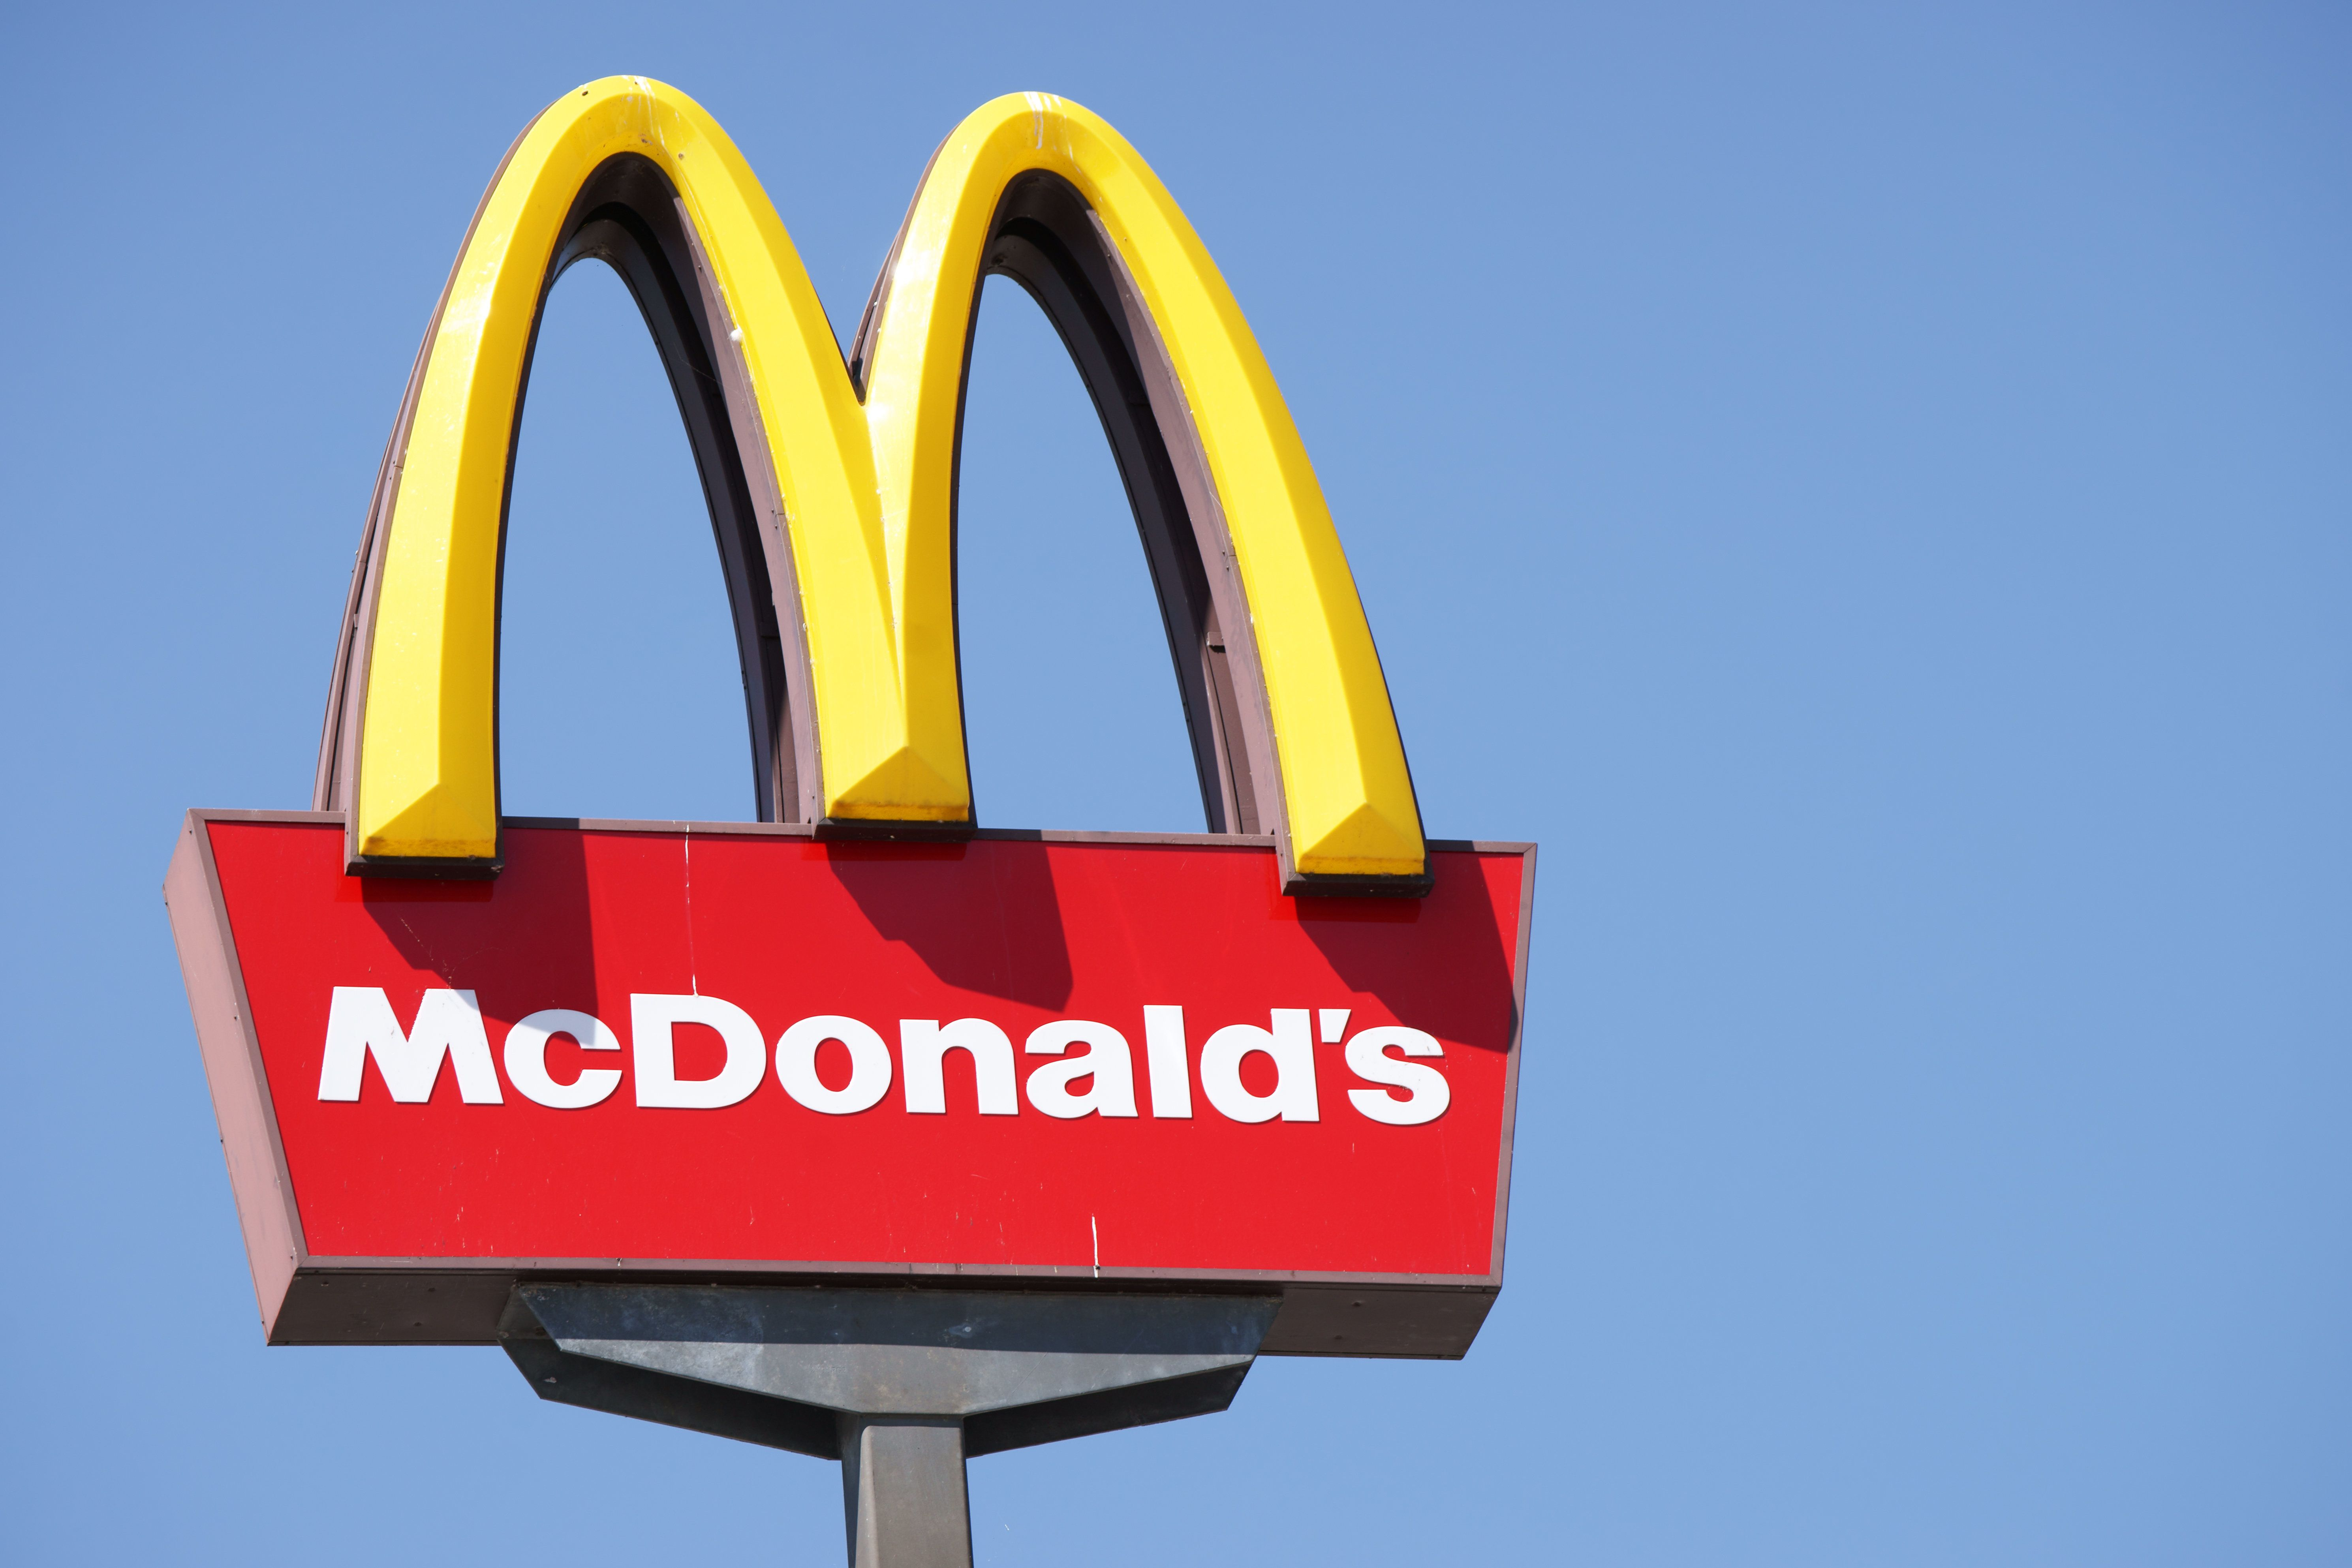 McDonalds Hit With Another 25 Sexual Harassment Complaints